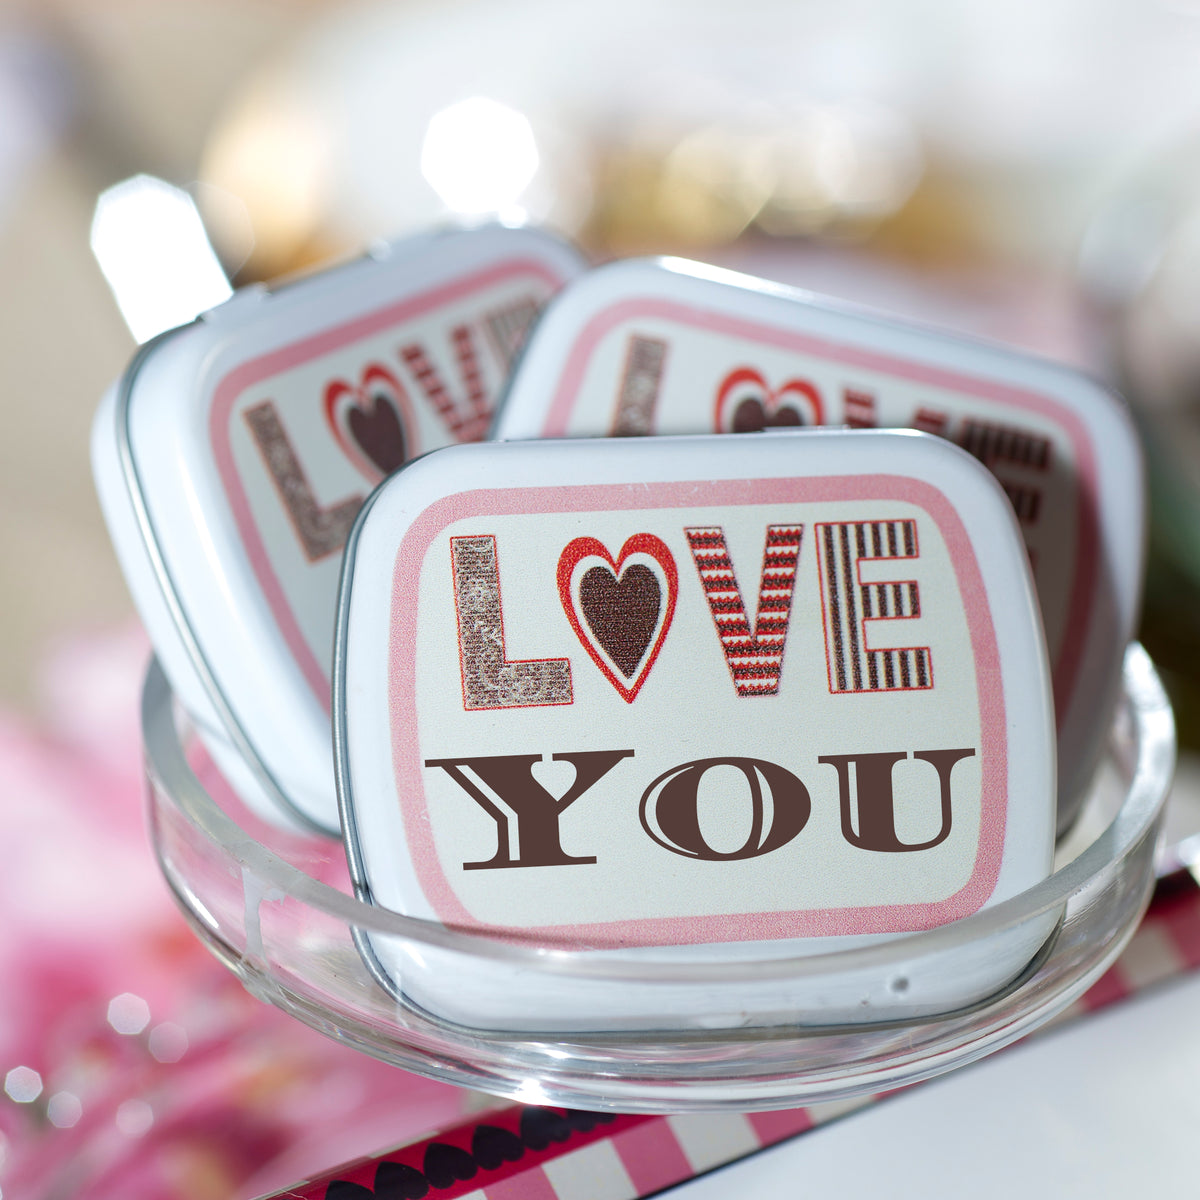 Black & White Swirl Personalized Mint Tins